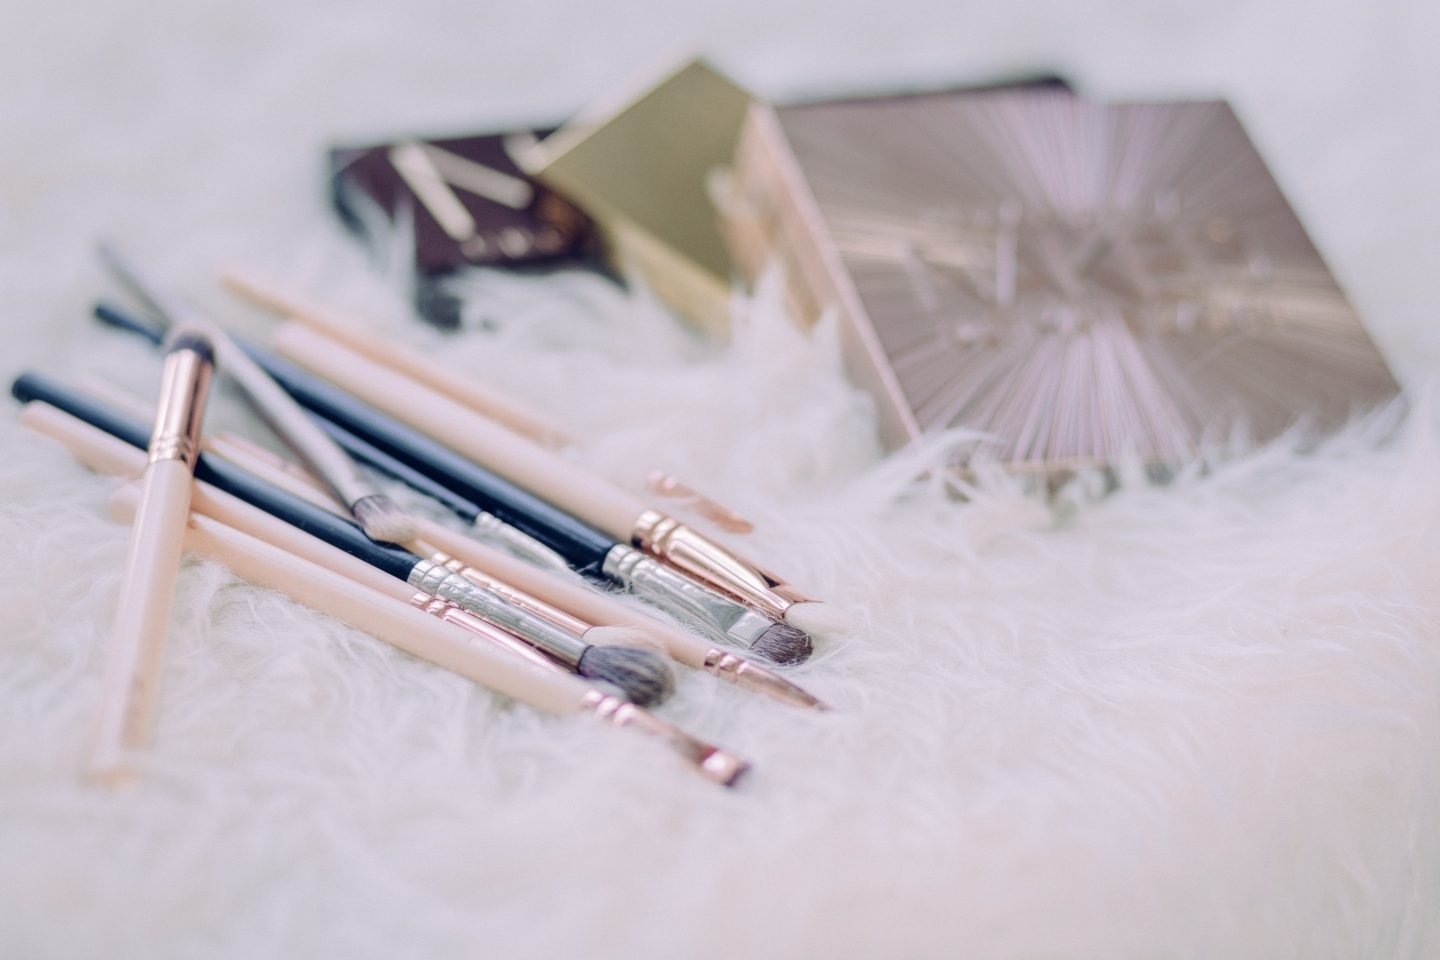 assorted makeup brushes and beauty boxes on white fur